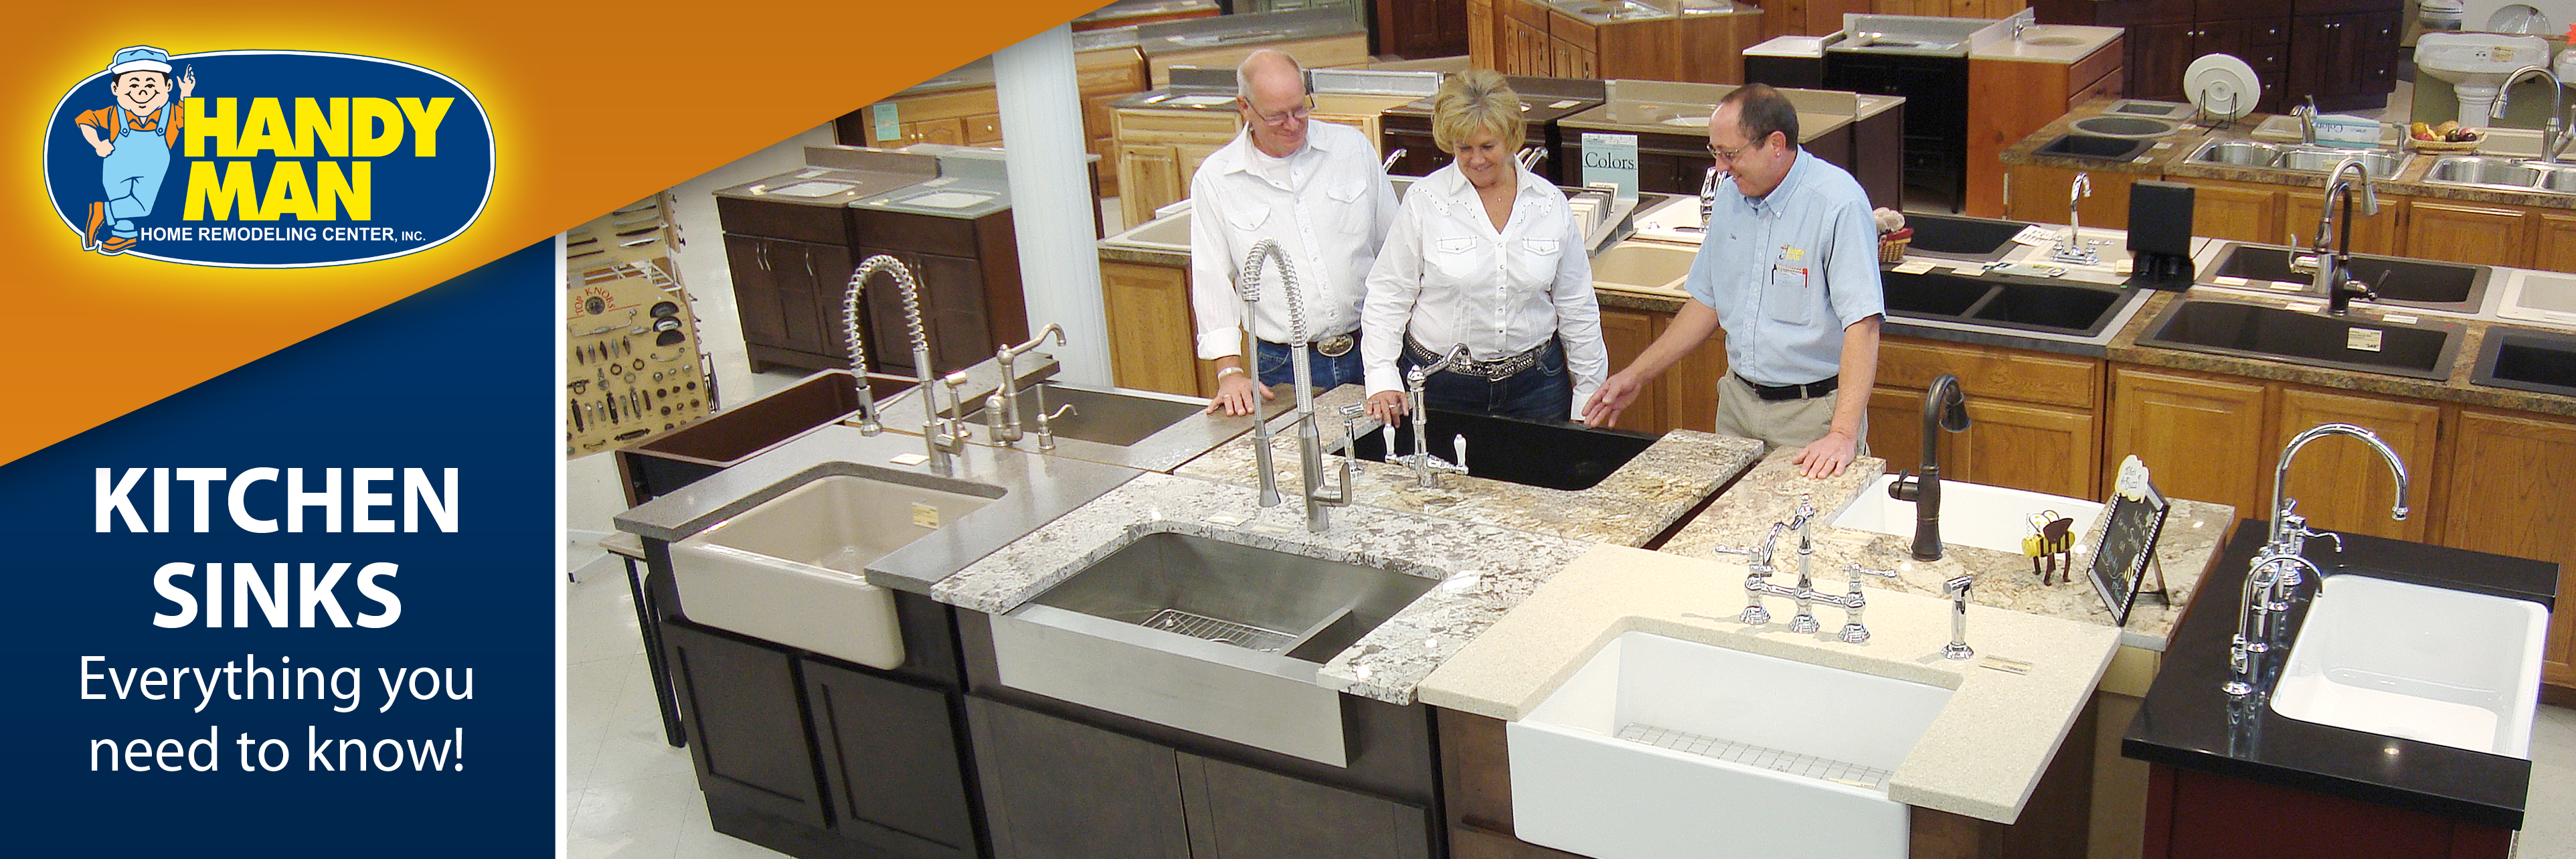 Handy man kitchen sinks the bow tie of your kitchen there are more choices available for kitchen sinks today than ever before let the experts at handy man show you the features and options that will make sisterspd